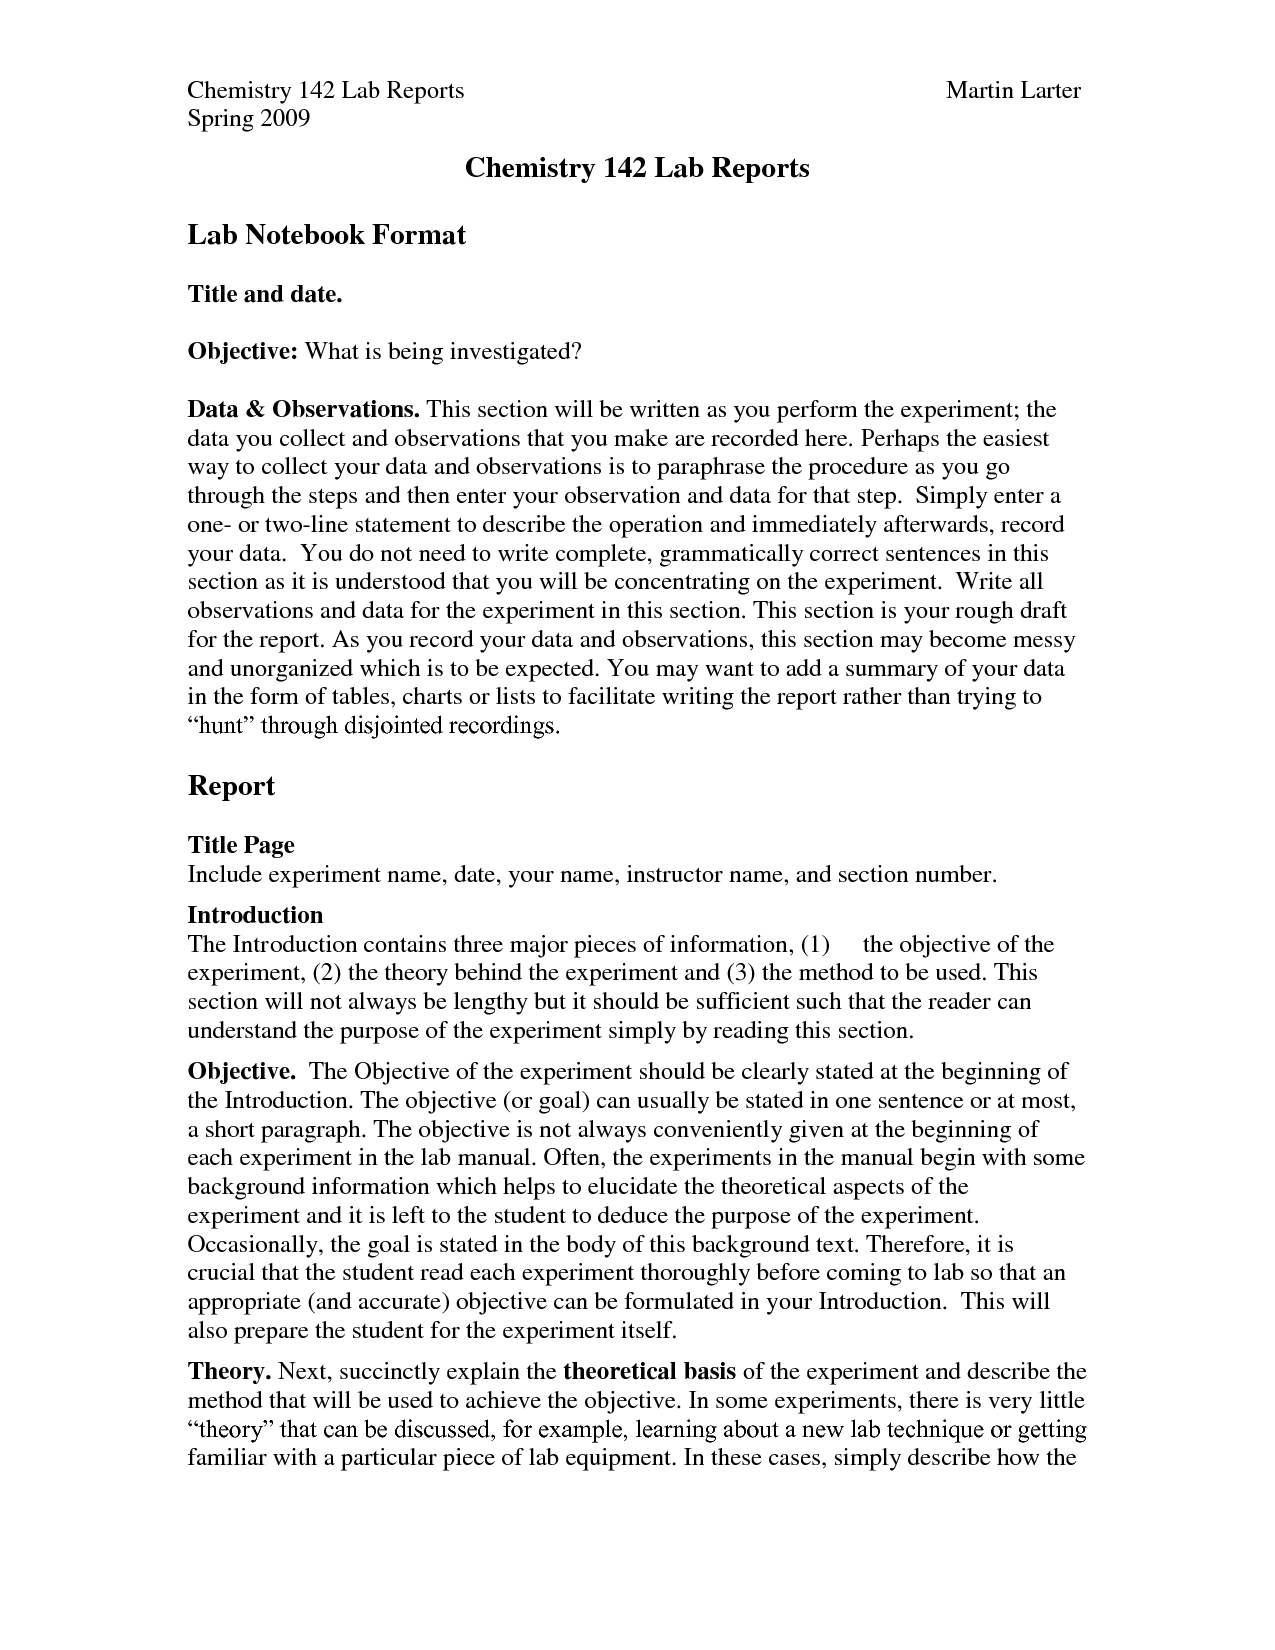 Help with essay writing on pdf free download